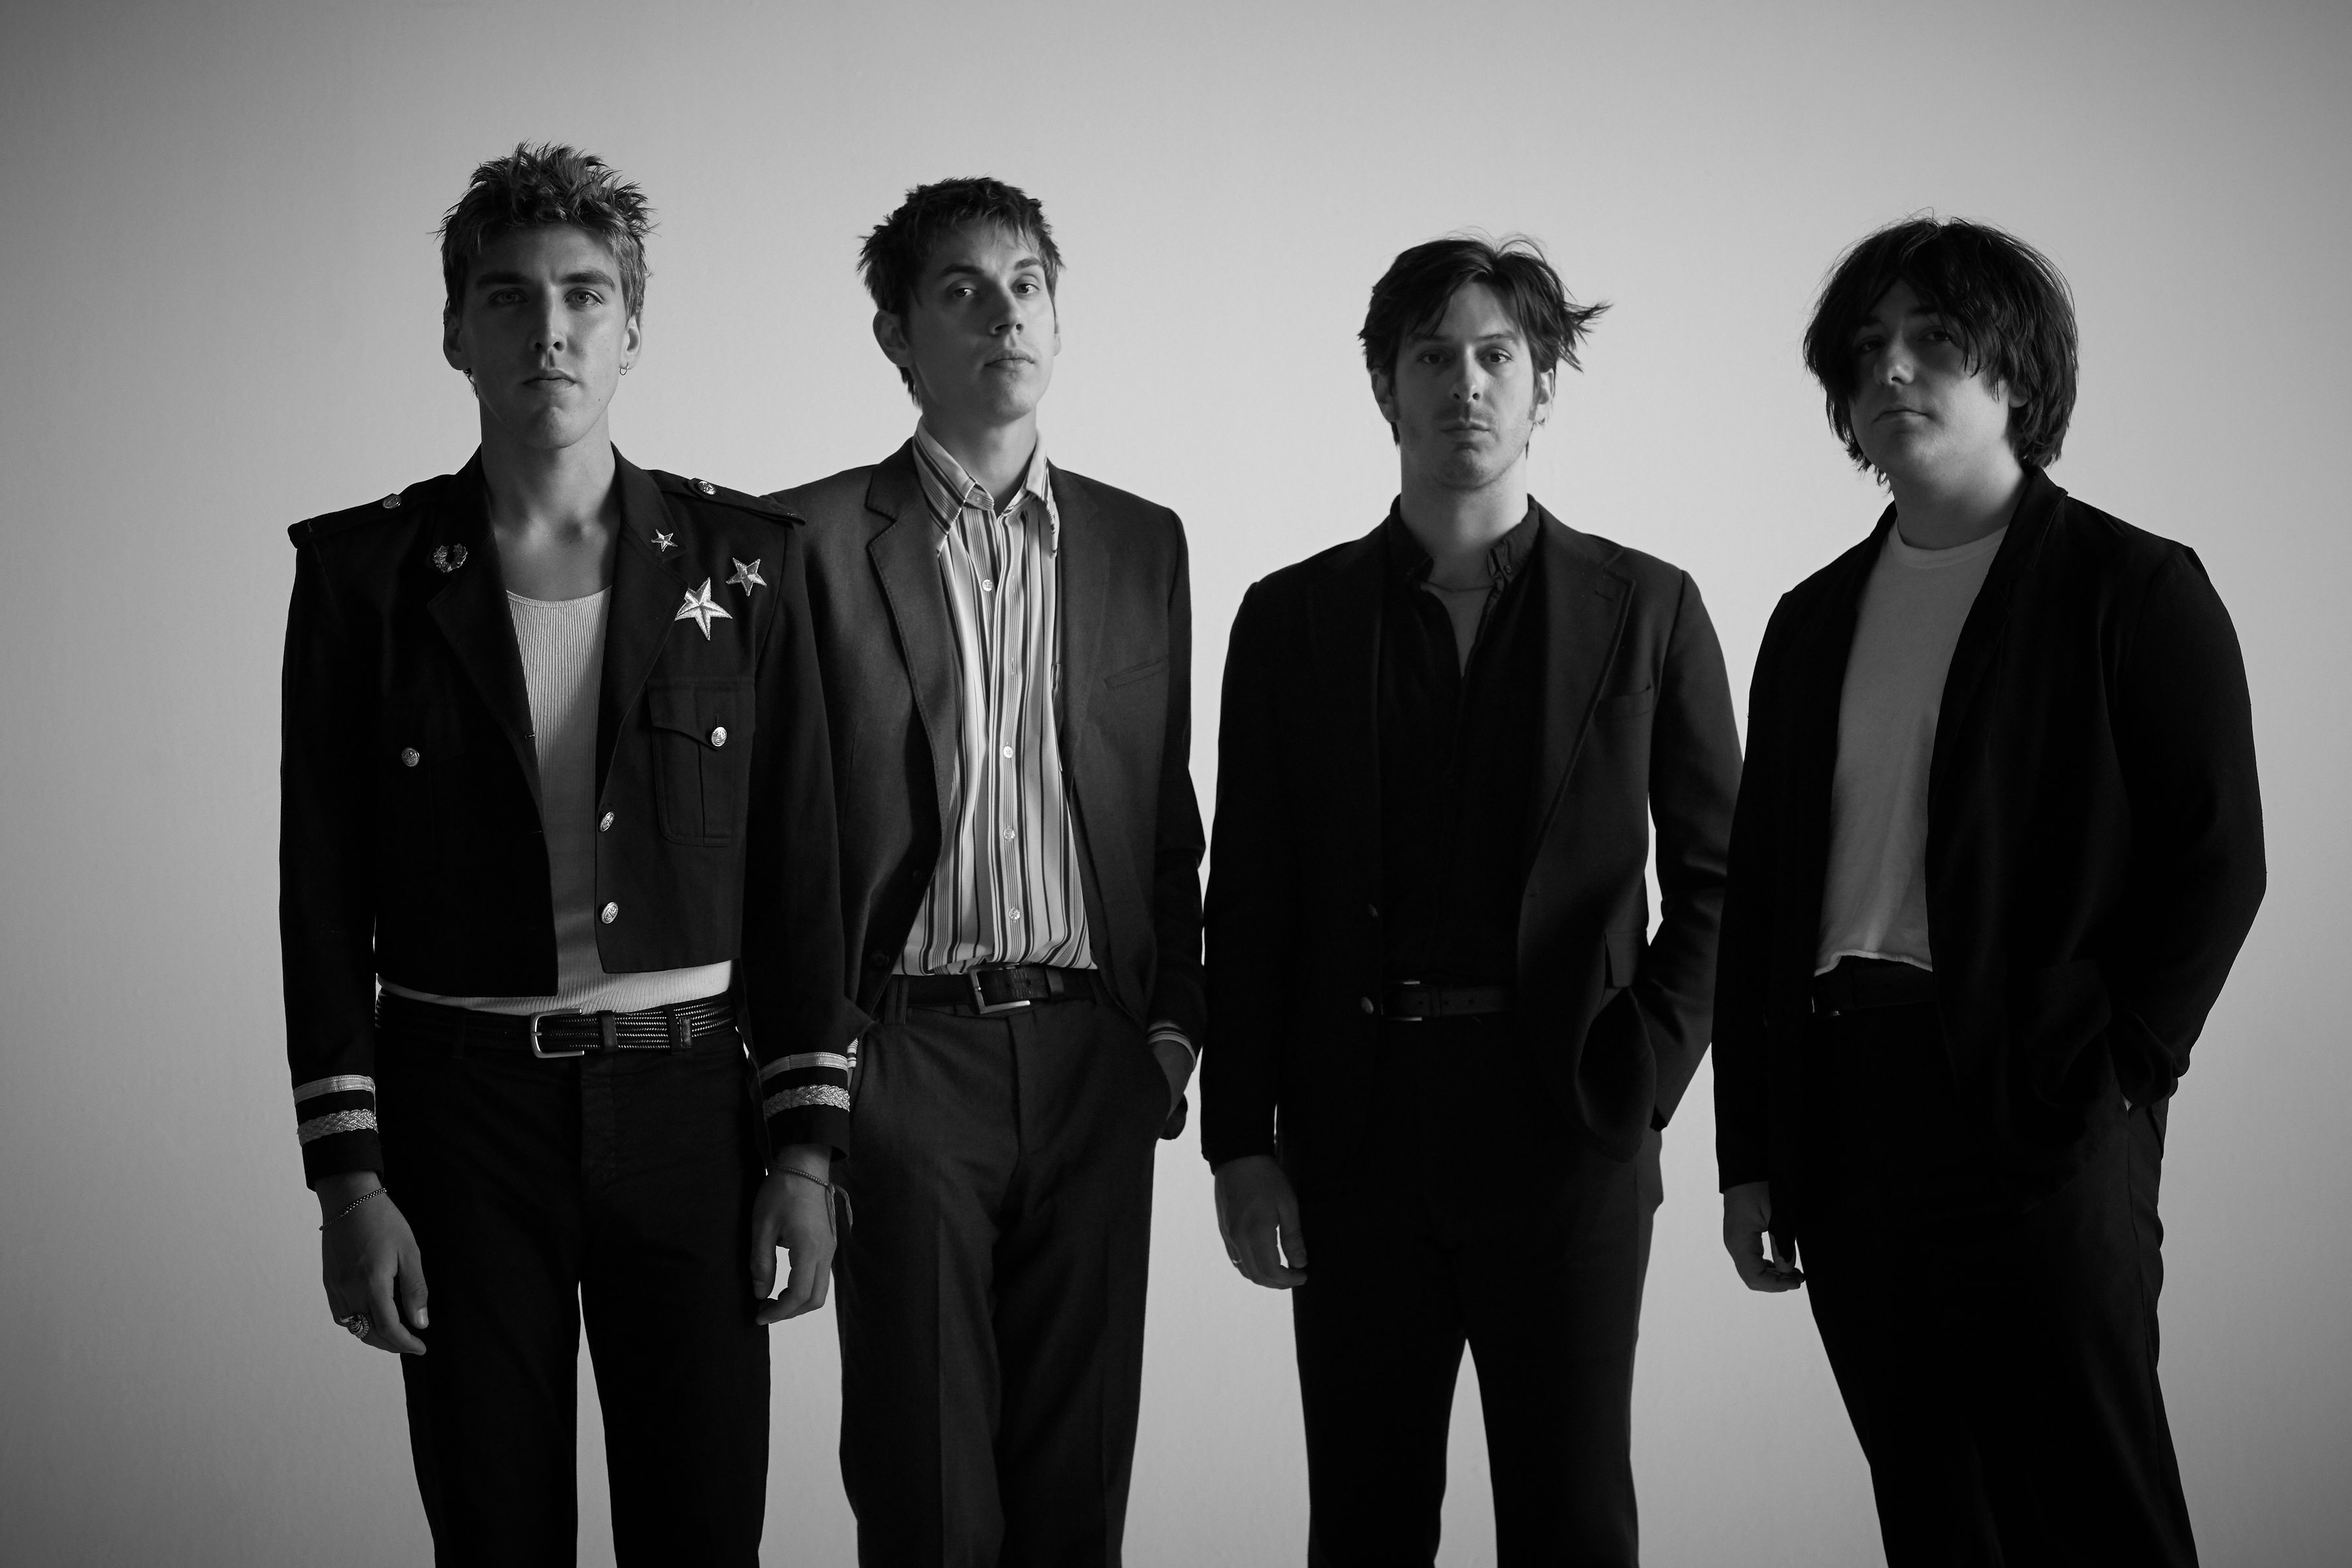 INTERVIEW: Bad Suns talk growth, writing on the road, and 'Mystic Truth'